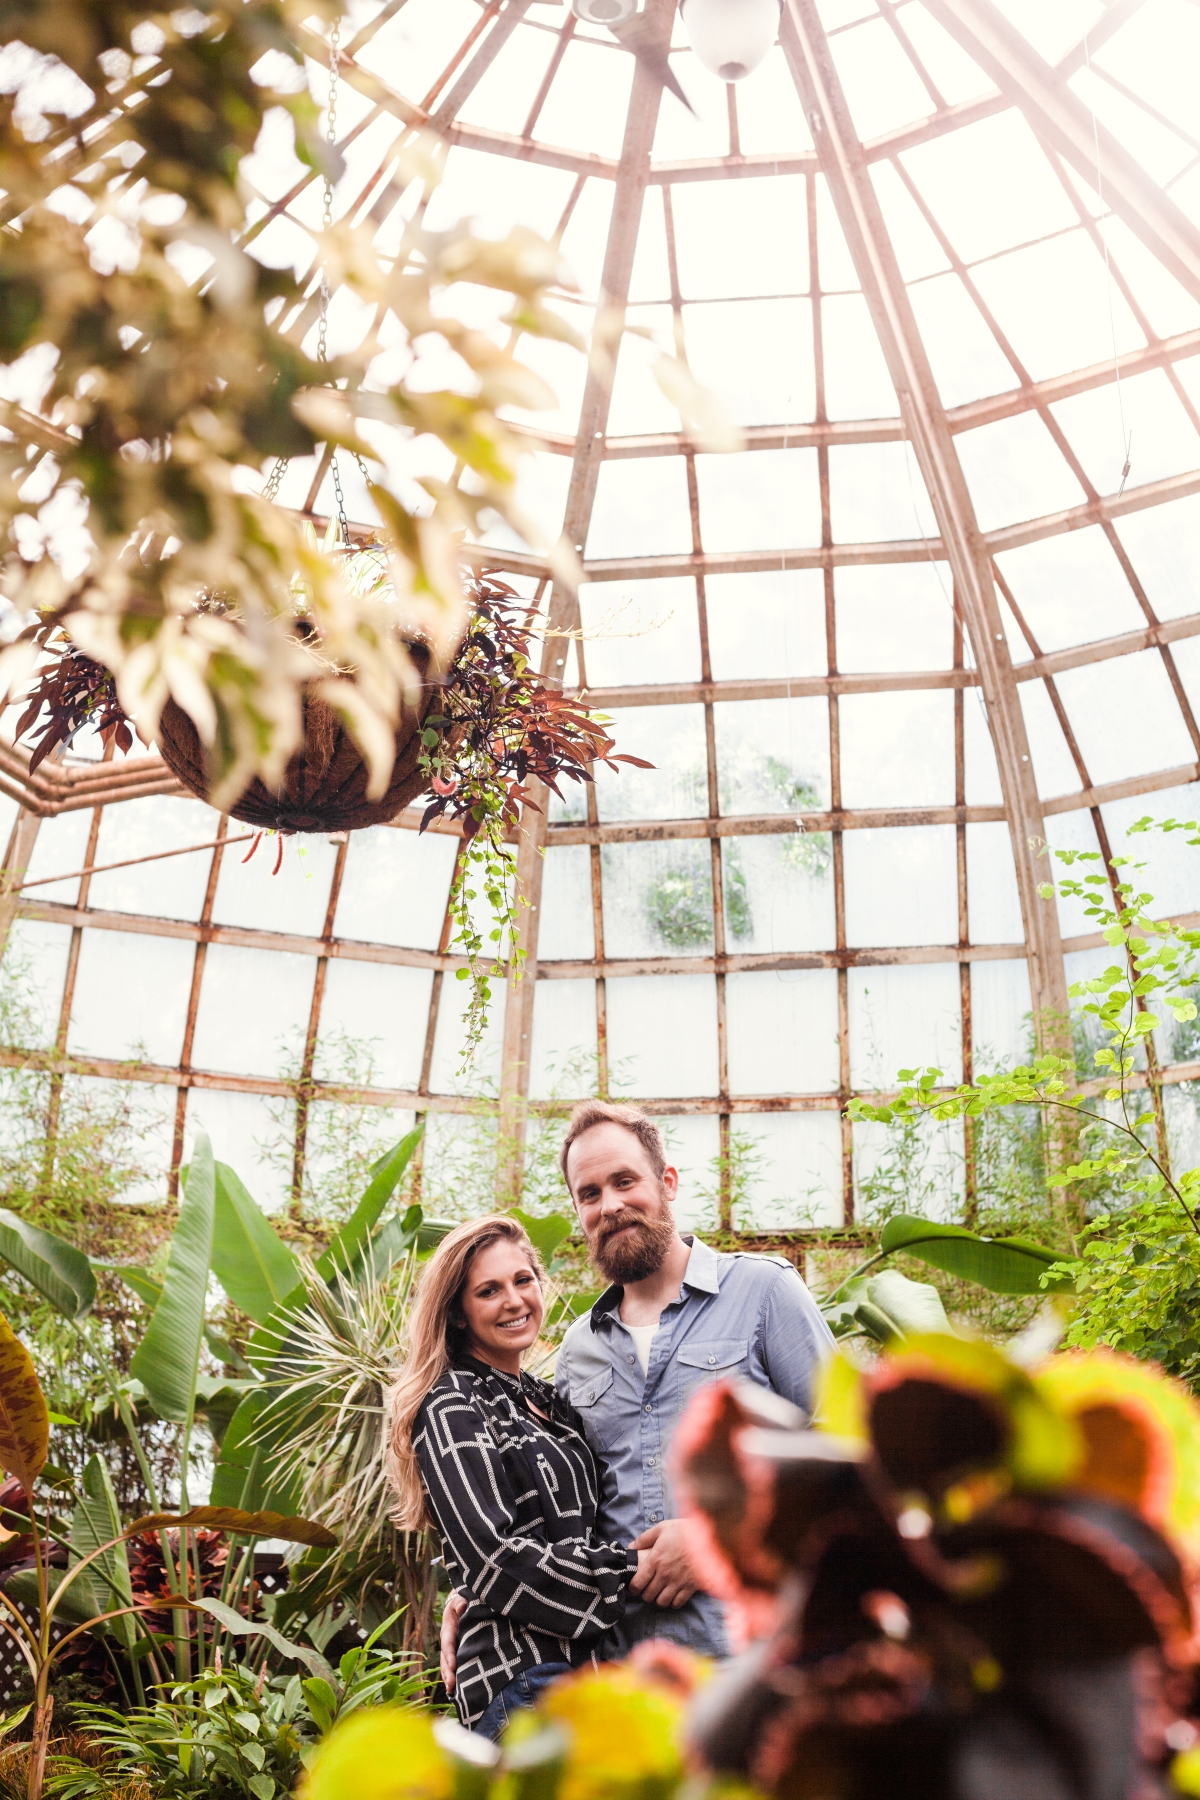 Lincoln Park Conservatory Engagement Session 17